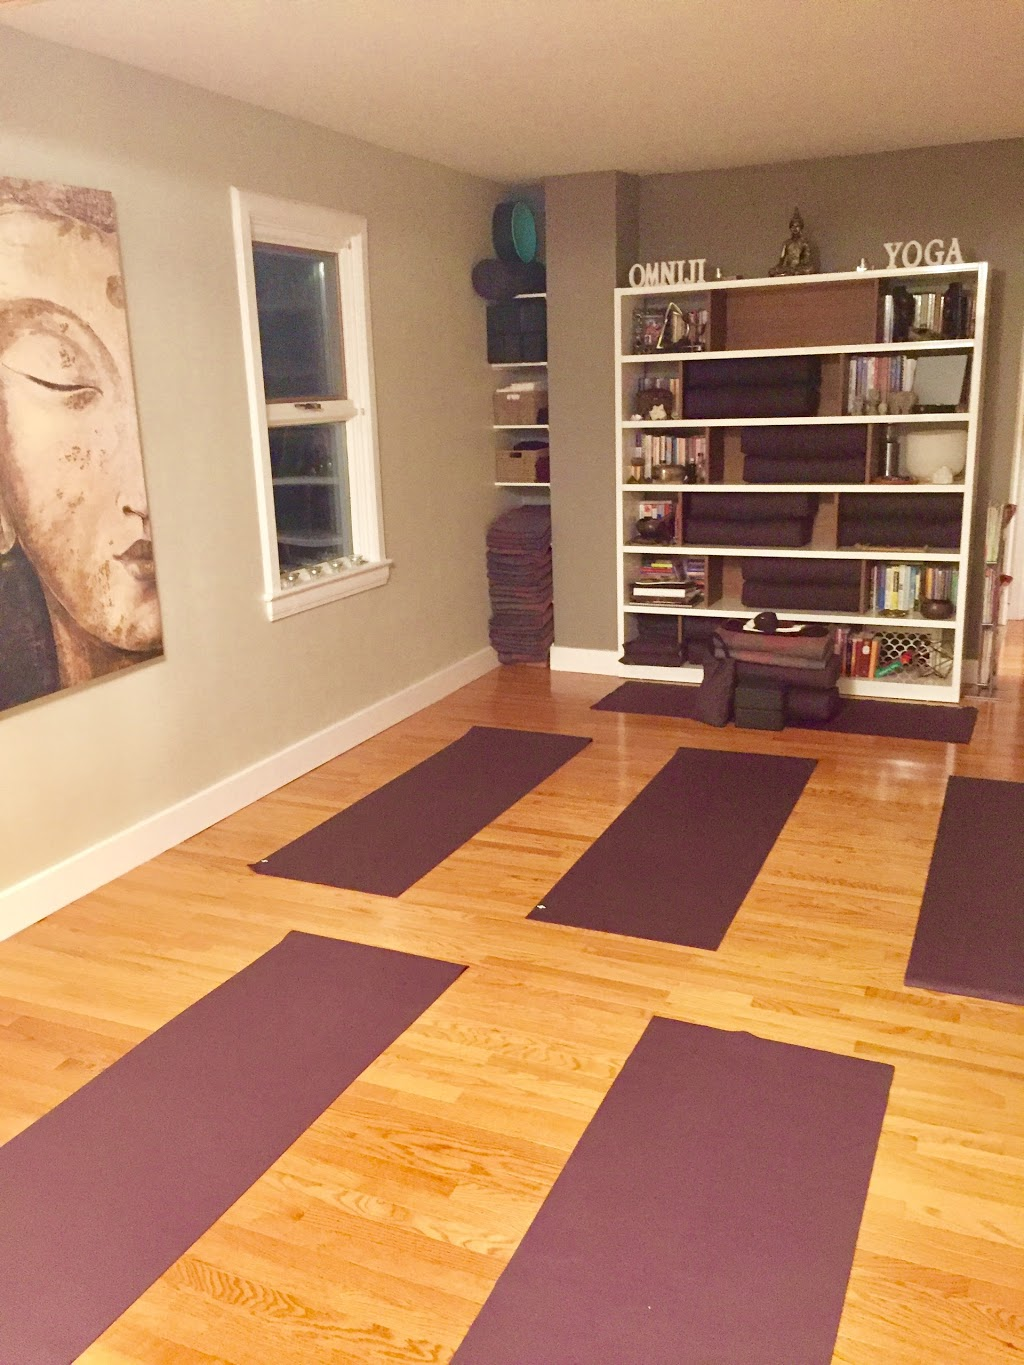 Omniji Yoga Therapy | gym | 129 Garfield St S, Winnipeg, MB R3G 2L7, Canada | 2049639642 OR +1 204-963-9642